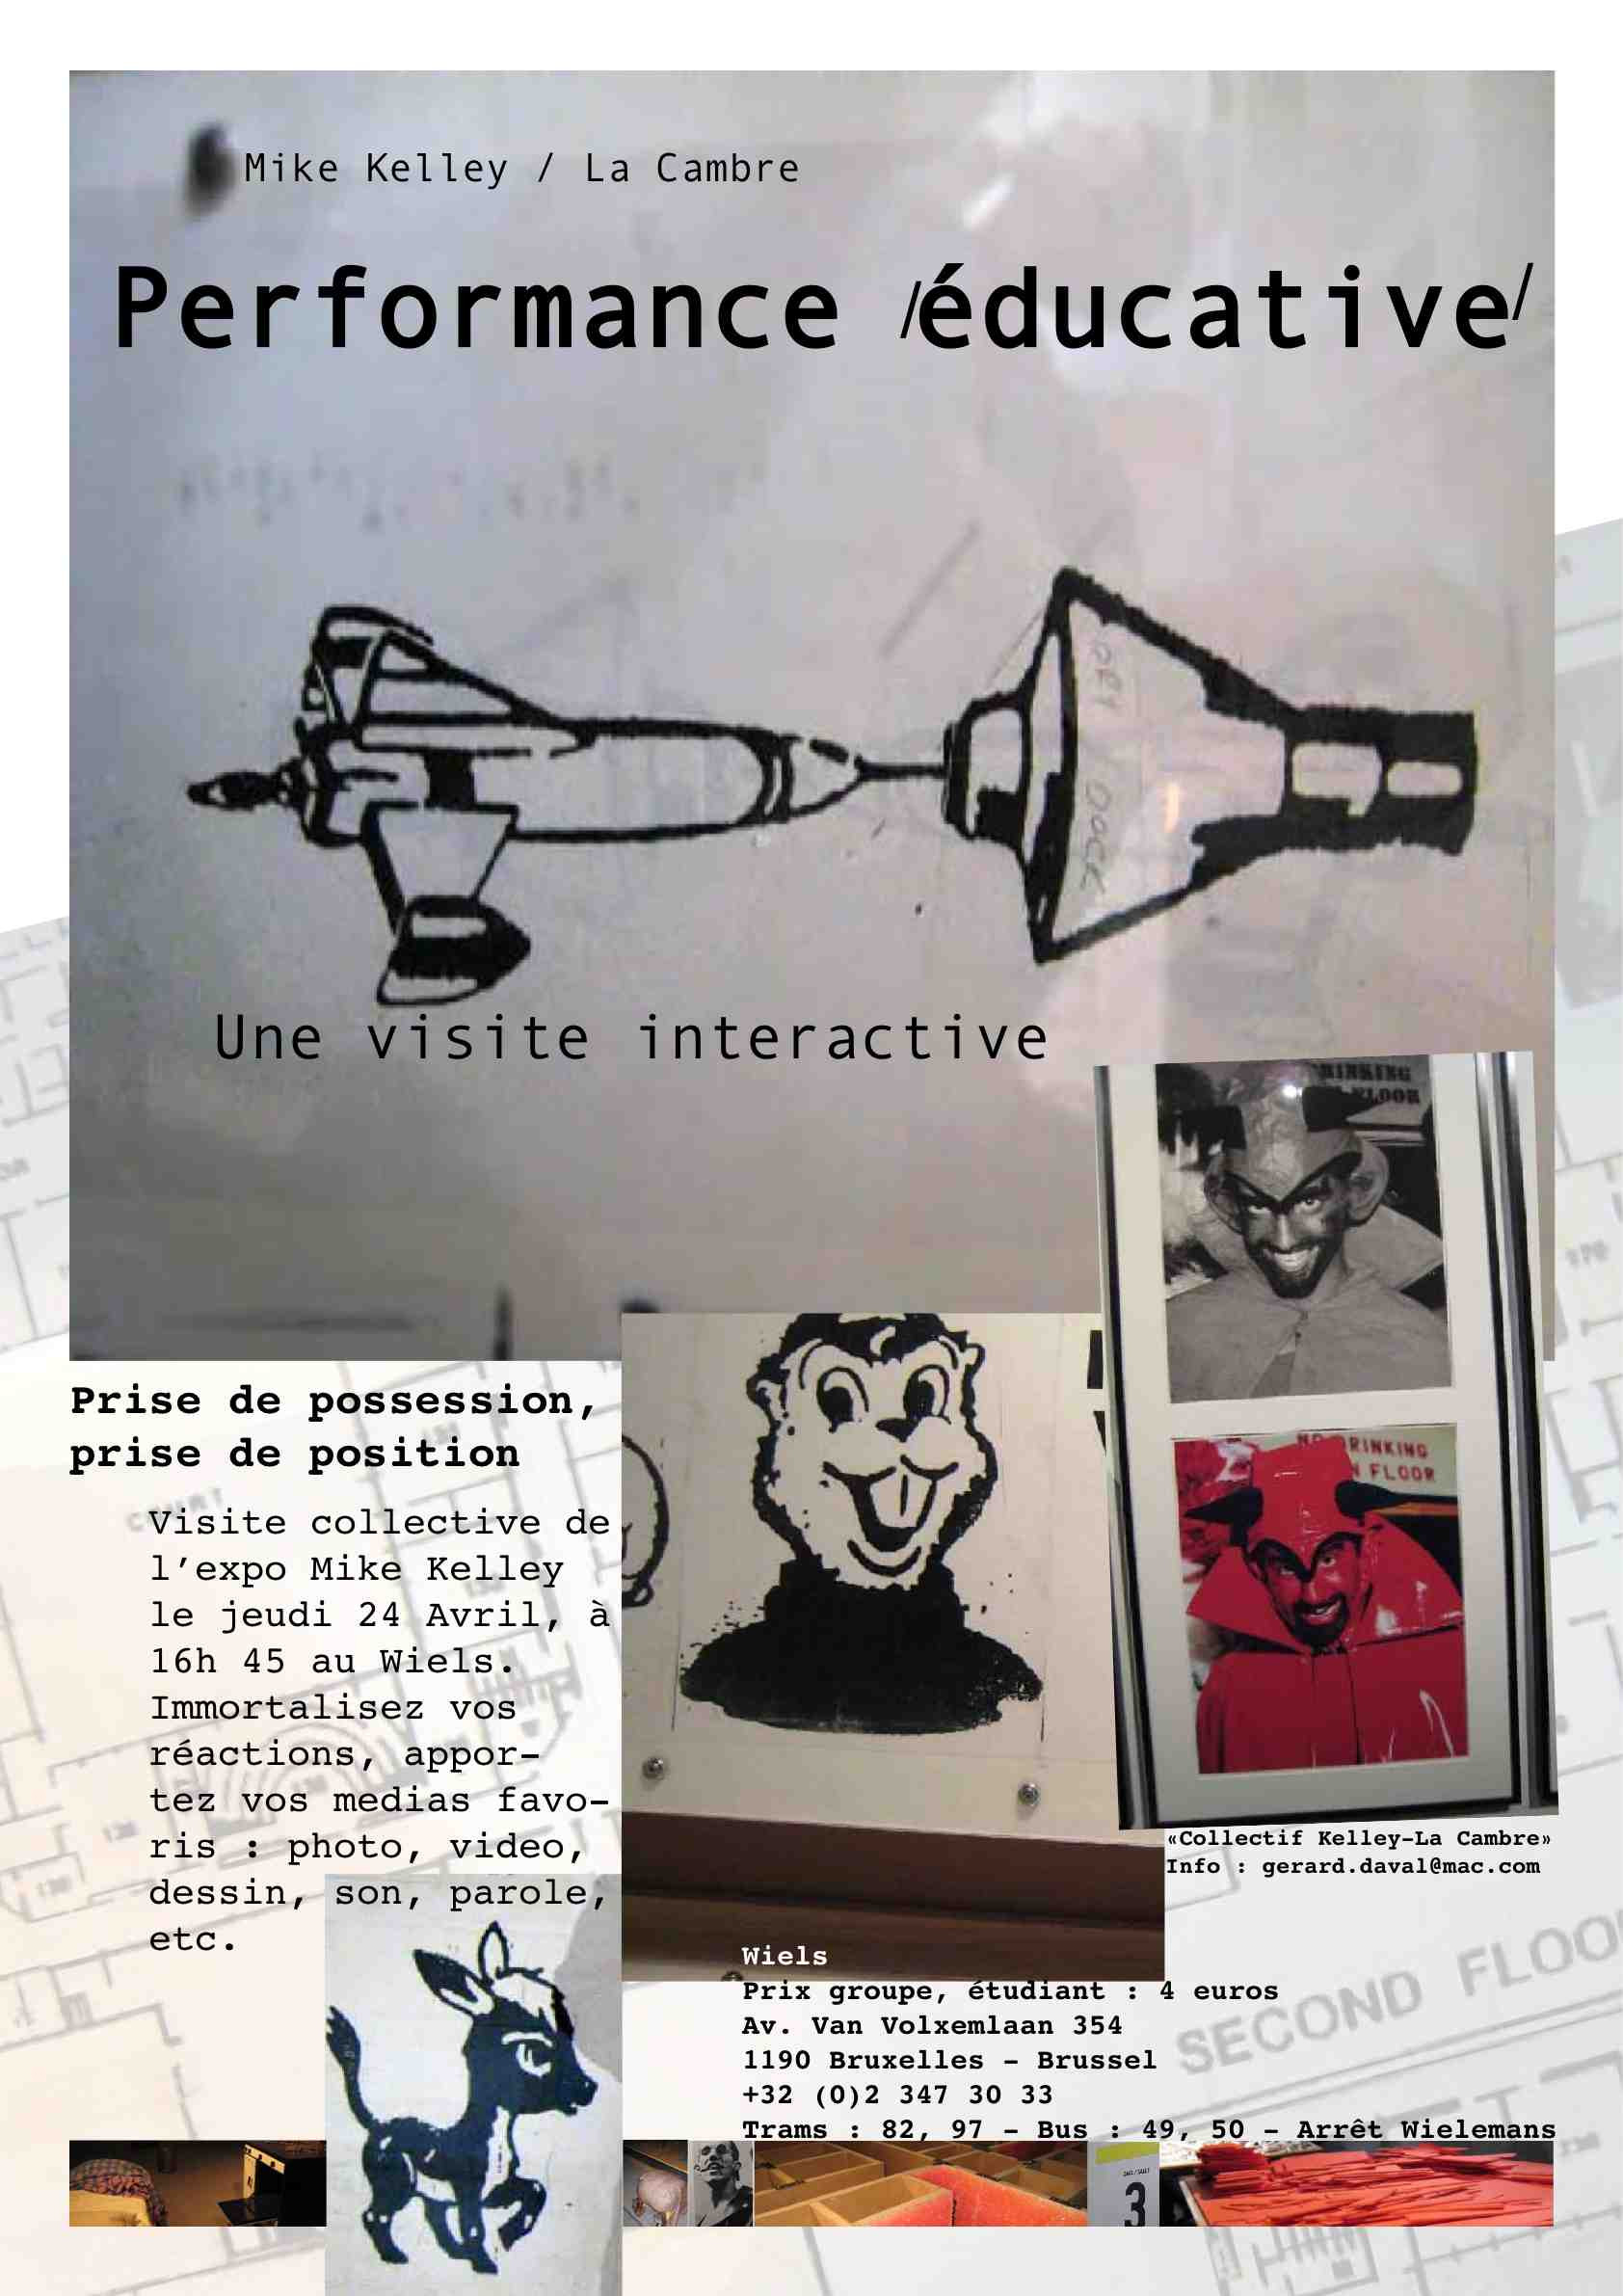 Lectures on collectives